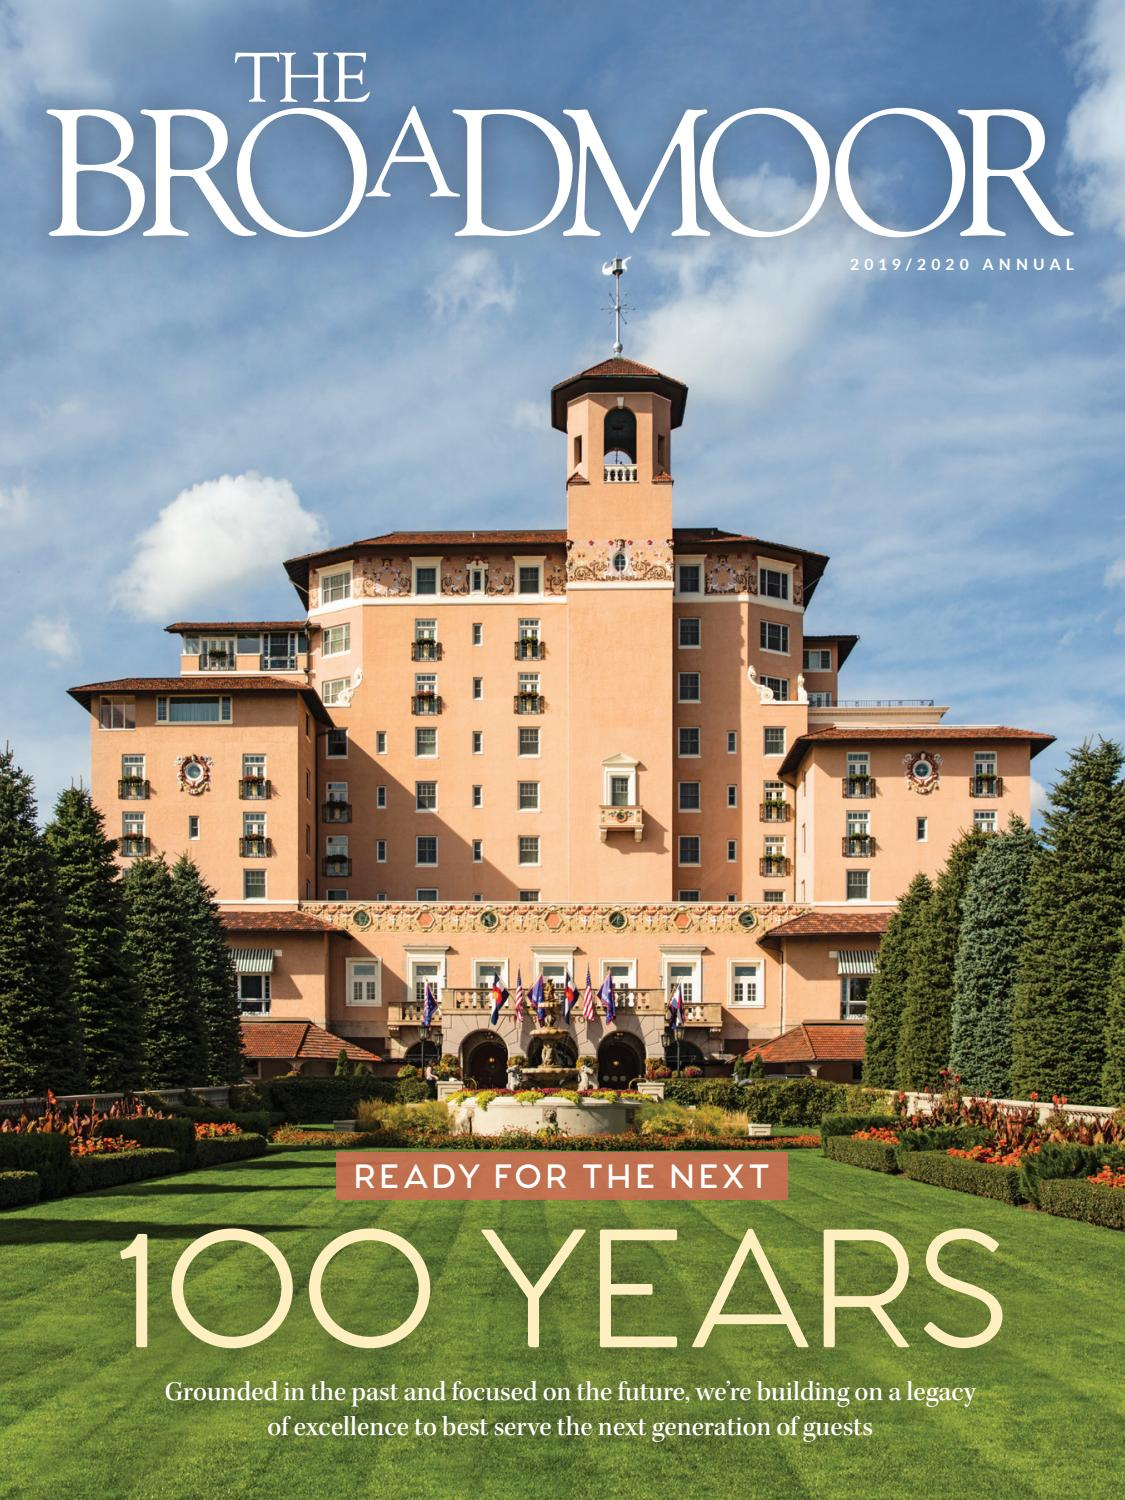 The Broadmoor Magazine 2019/2020 by Hungry Eye Media   issuu